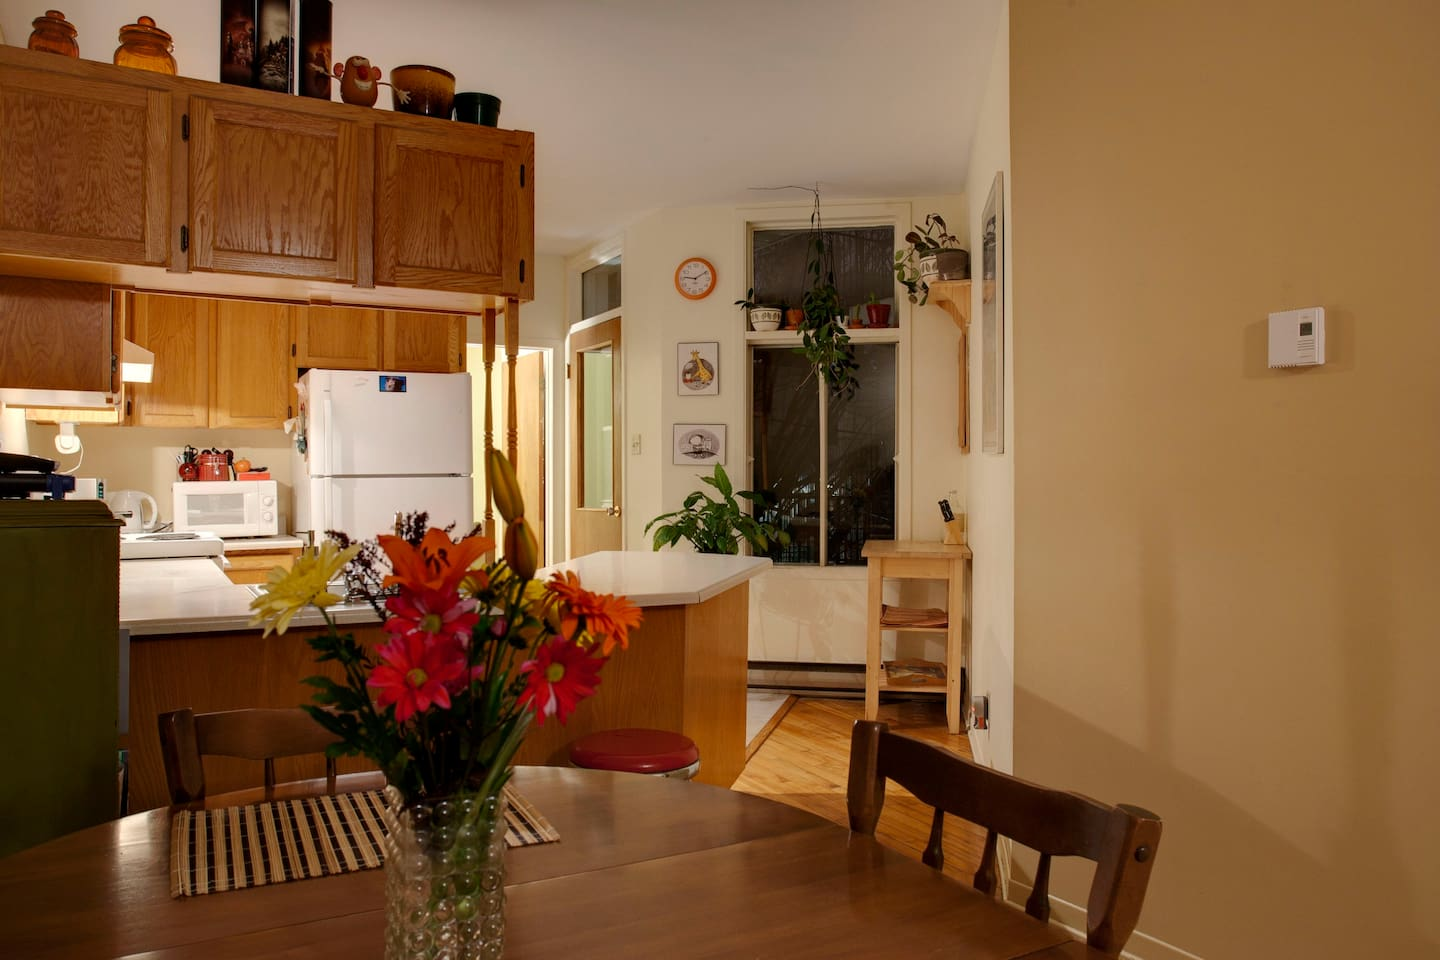 Dining room and full kitchen (shared)